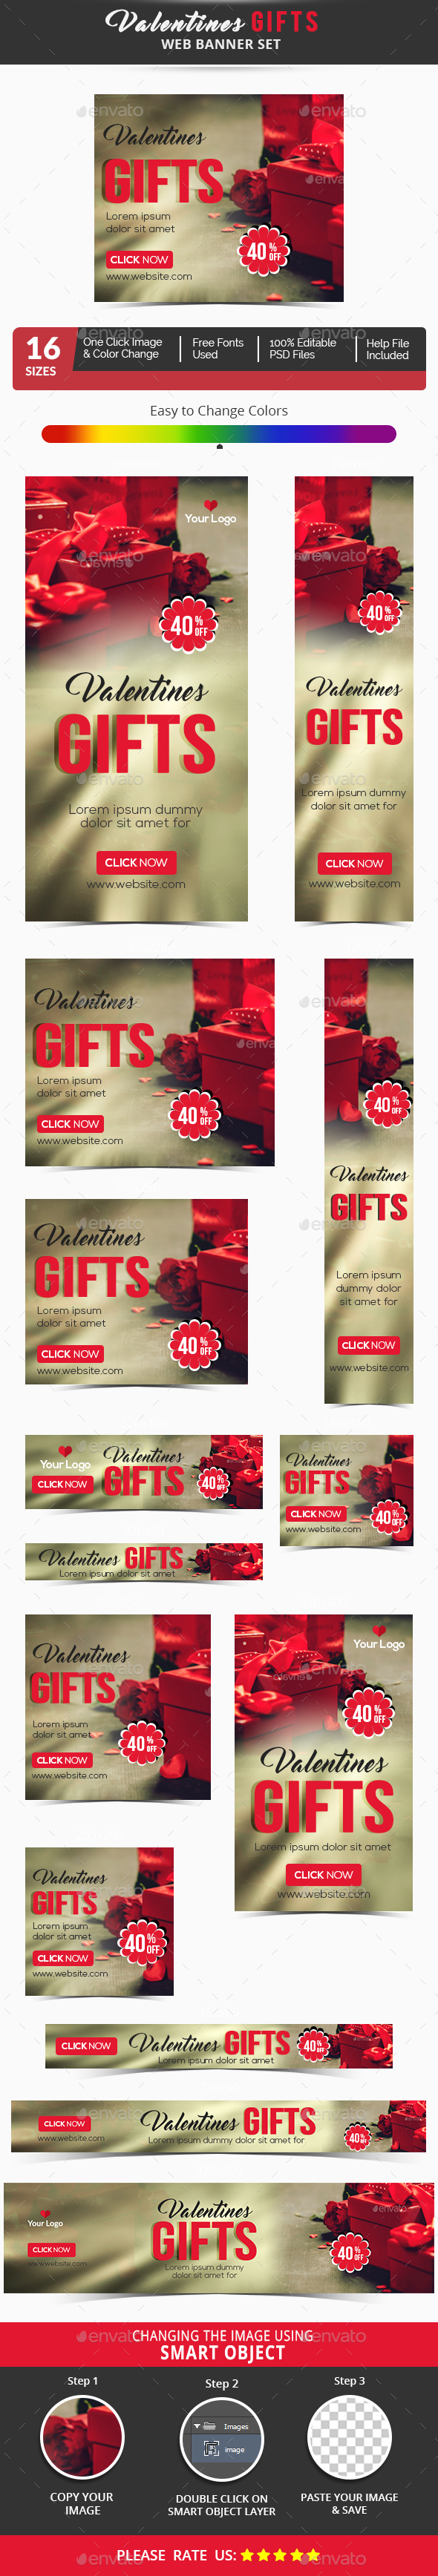 Valentines Day Banner Set - Banners & Ads Web Elements